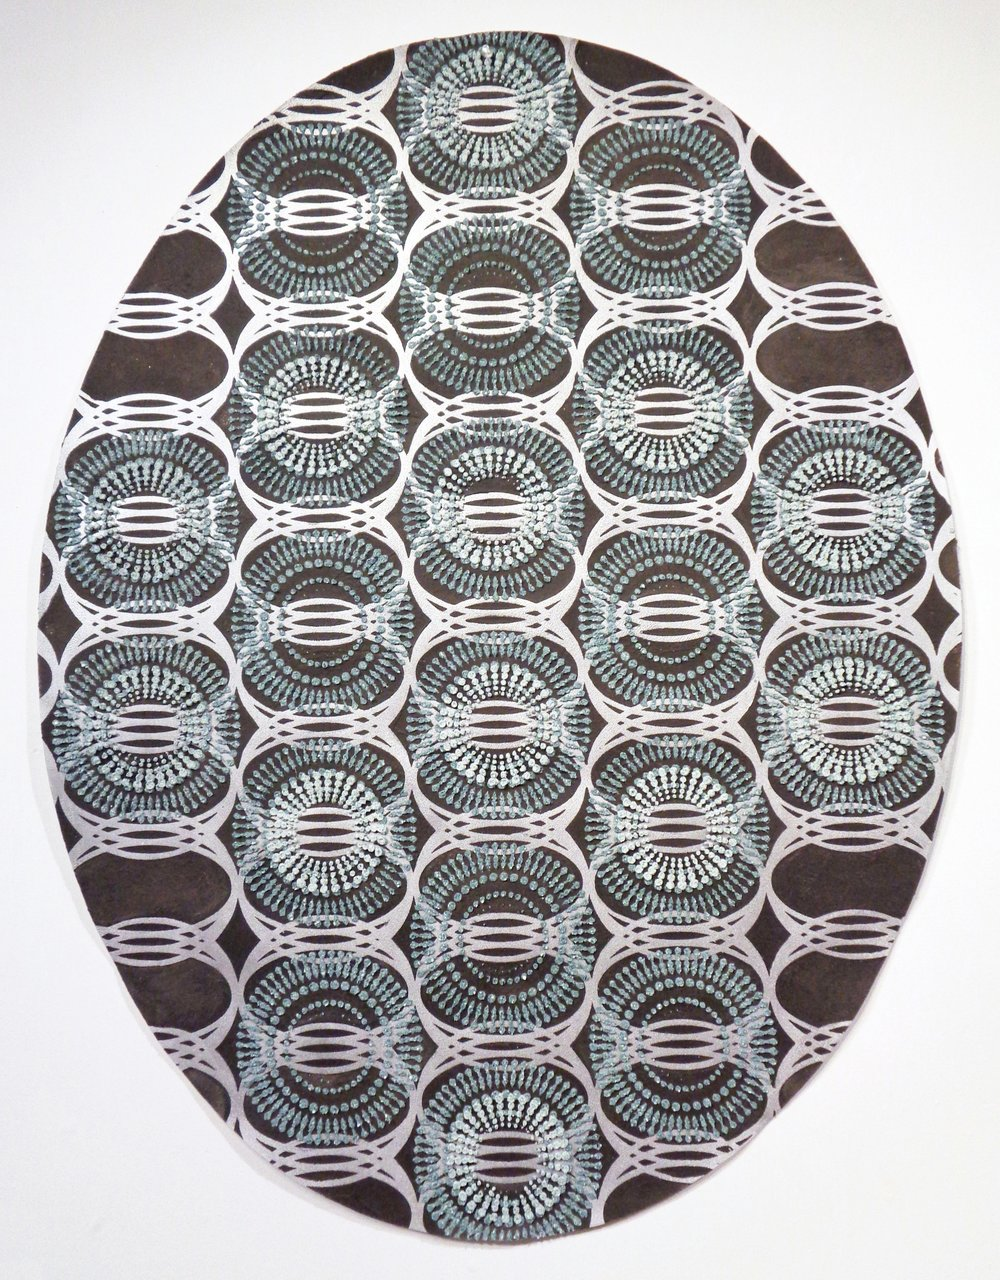 Eleanor White,  Untitled (large oval) , 2018, wood ash, chicken eggshell, emu eggshell, polymer medium on painted paper, 50 x 38.5 inches (unframed), 53.5 x 42 inches (framed), $8000. (framed)